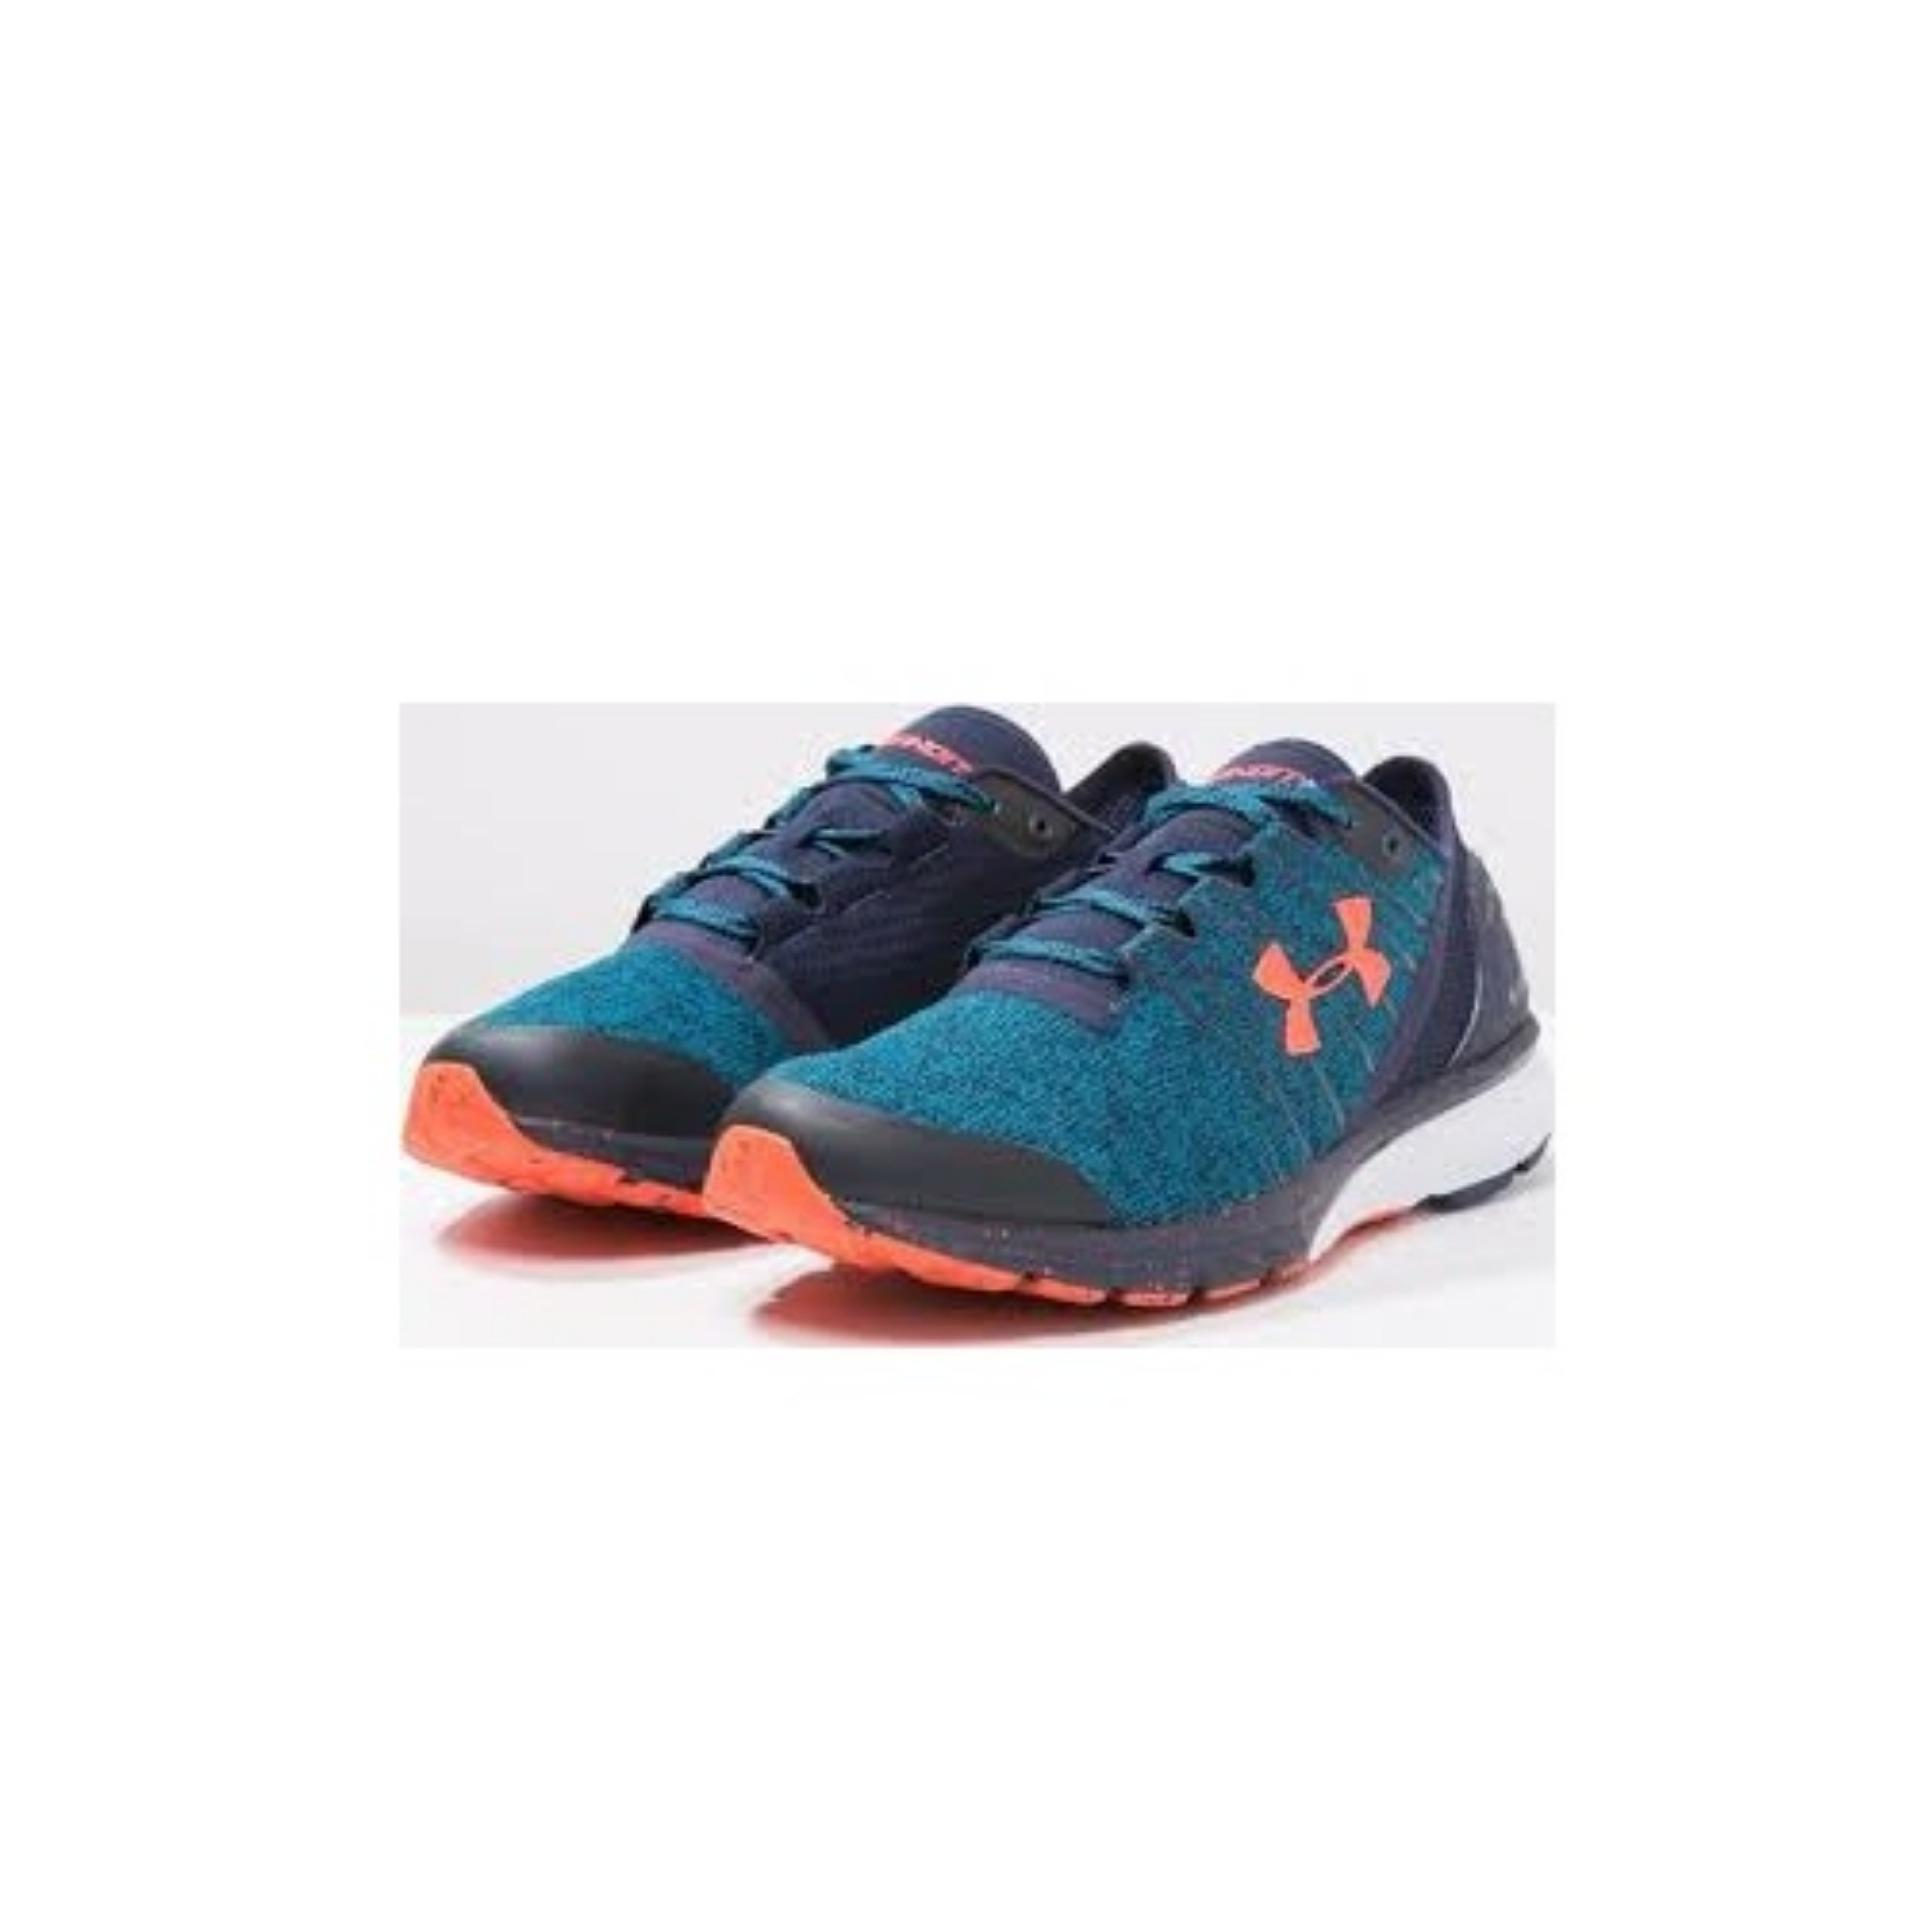 official photos 506f1 af36e Philippines | Under Armour Men's Charged Bandit 2 Training ...